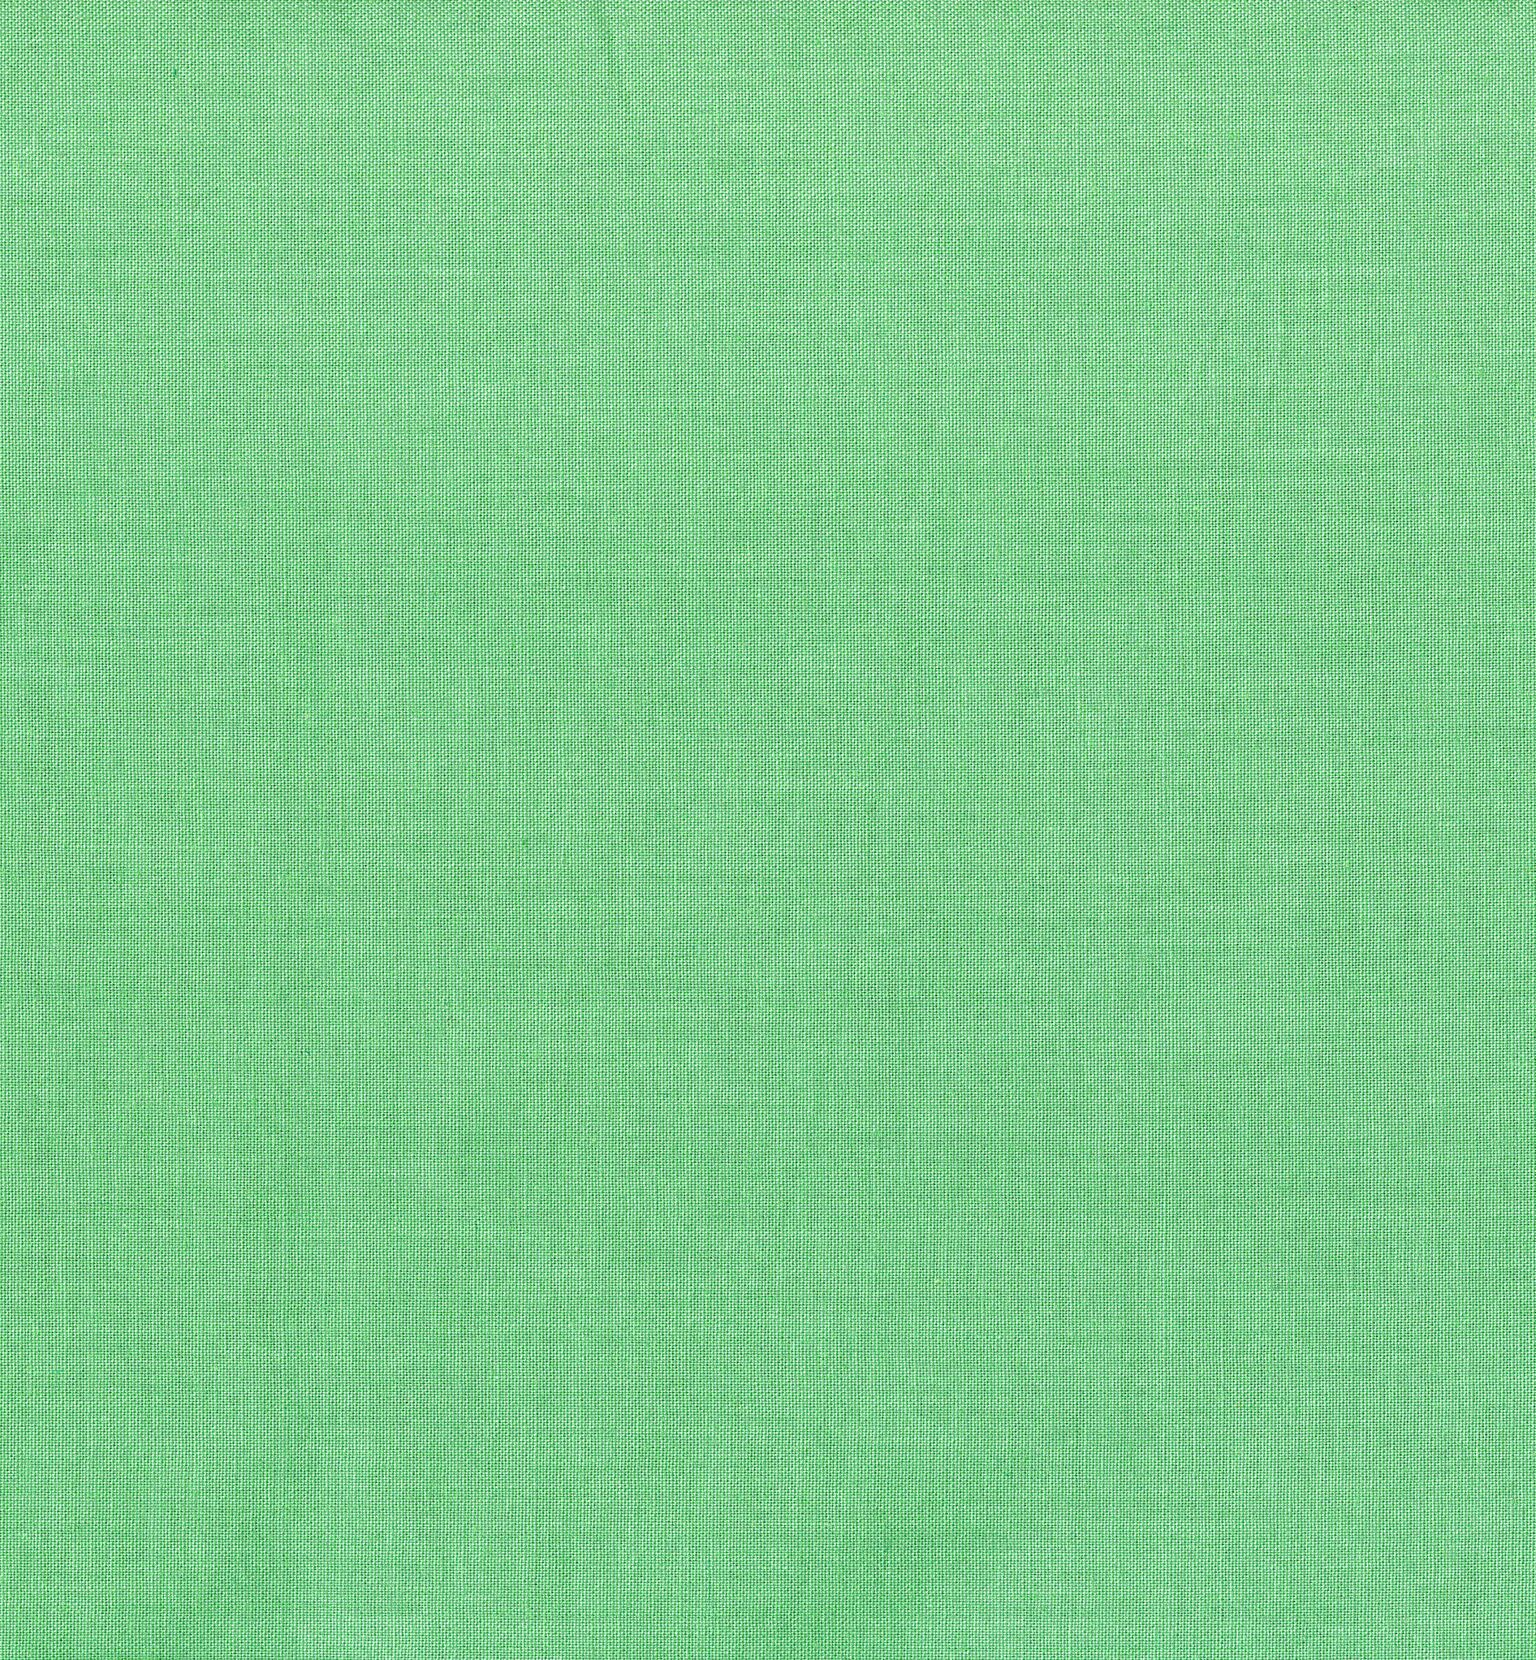 Cotton Supreme Solids-Jadeite- RJR Fabrics- 390